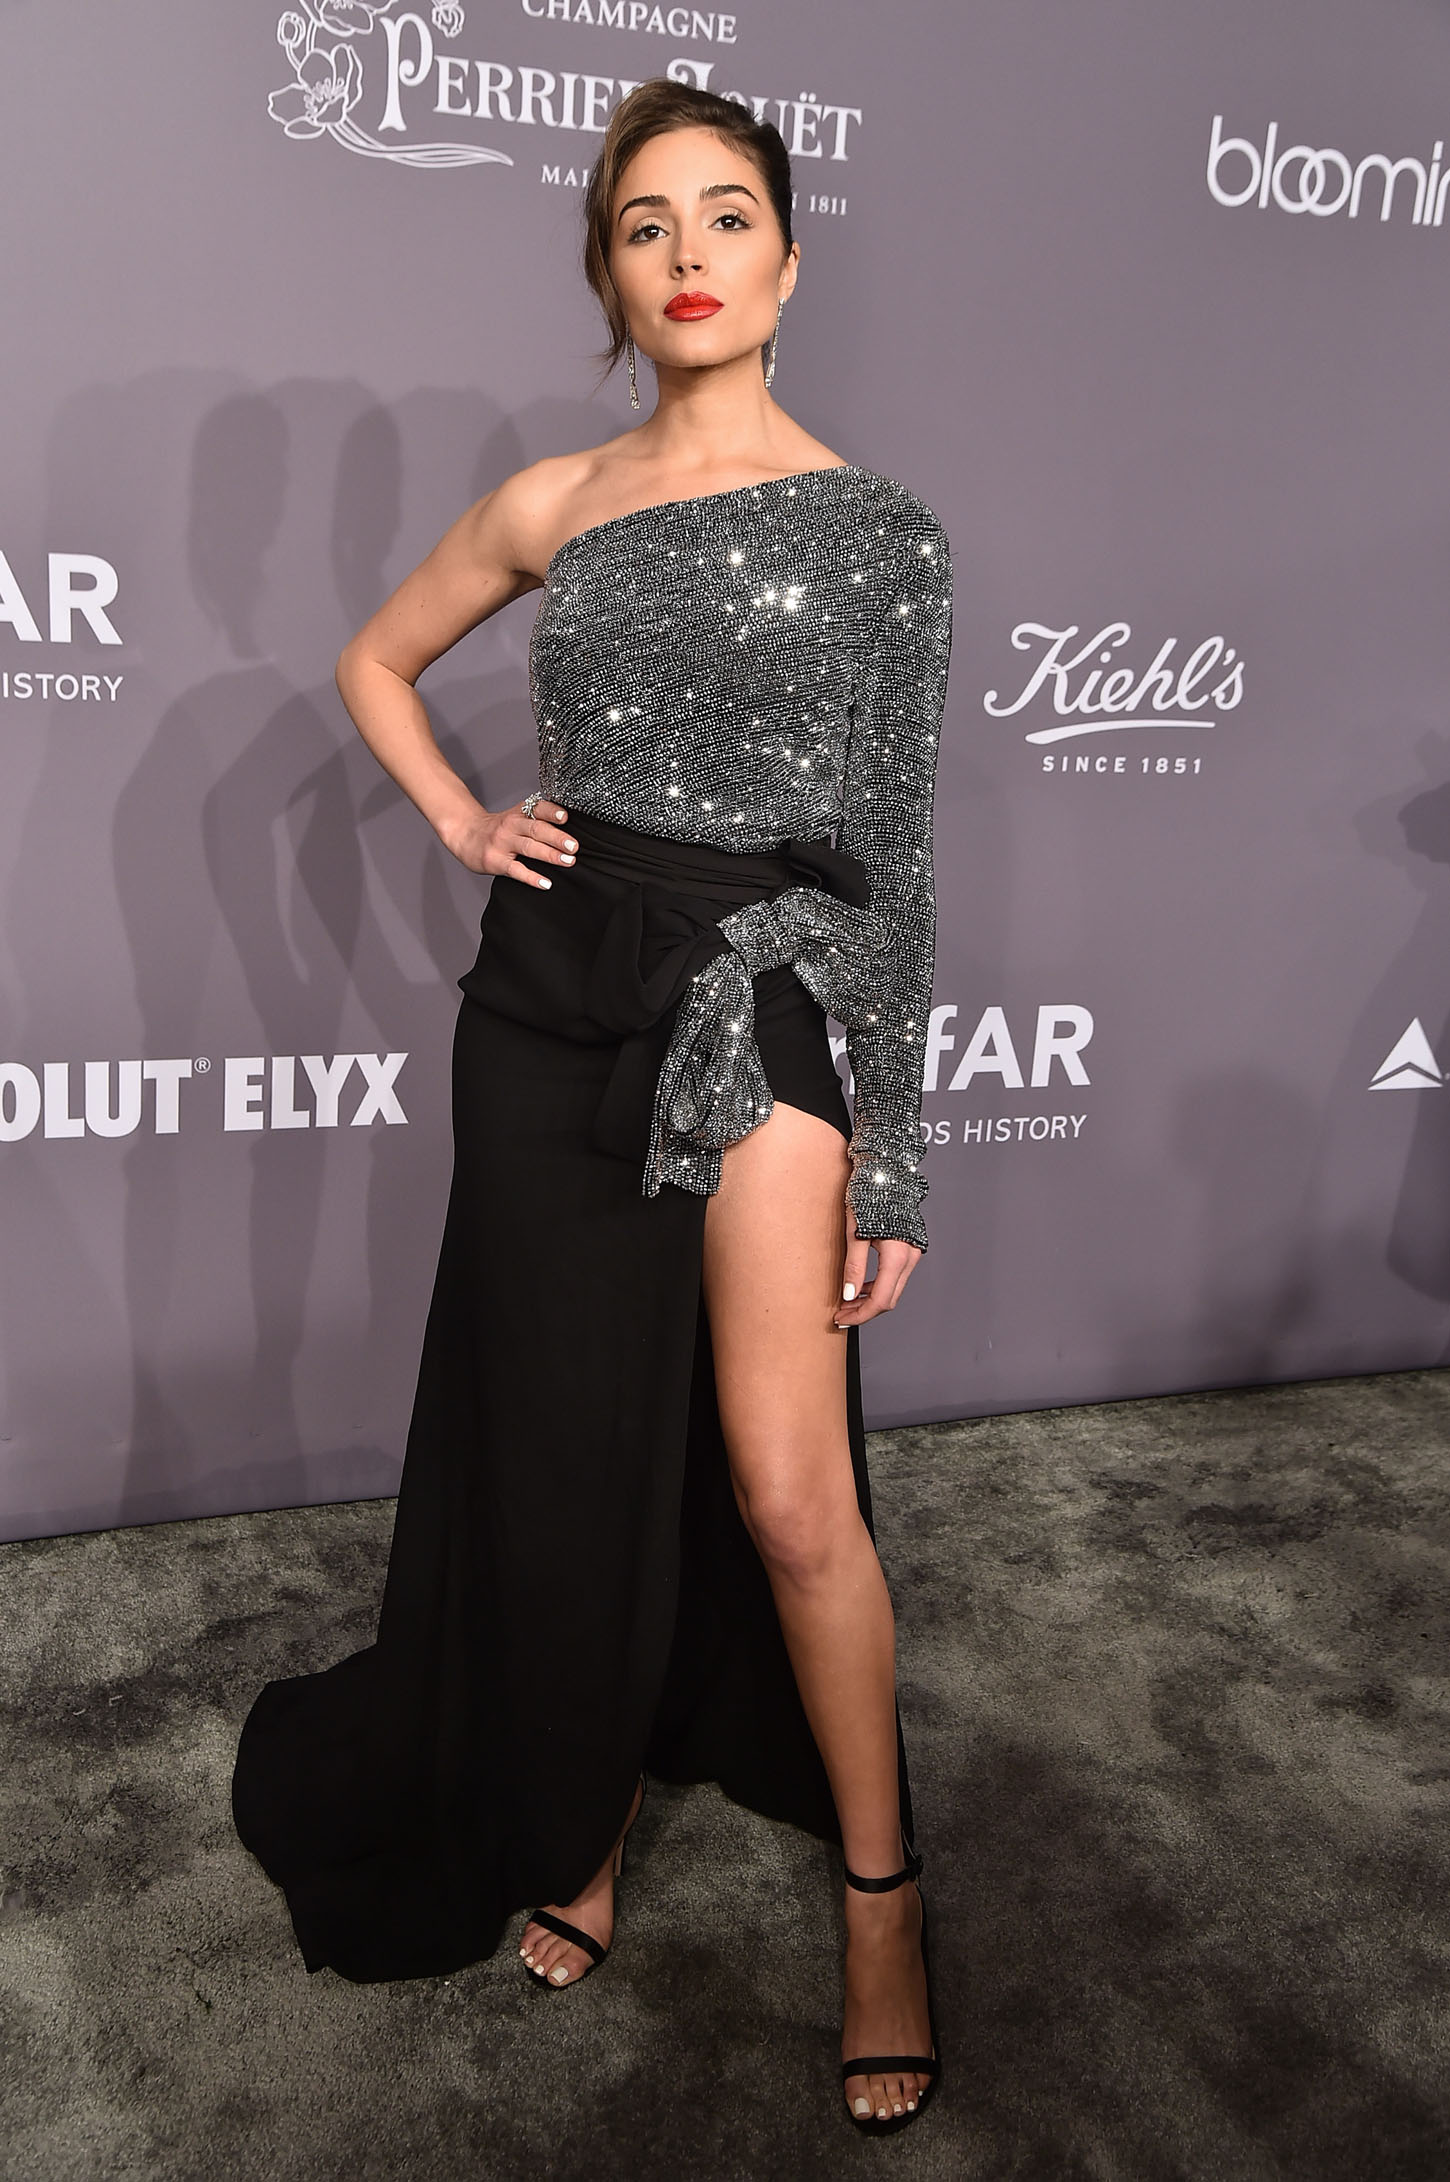 NEW YORK, NY - FEBRUARY 07:  Model Olivia Culpo attends the 2018 amfAR Gala New York at Cipriani Wall Street on February 7, 2018 in New York City.  (Photo by Theo Wargo/Getty Images)